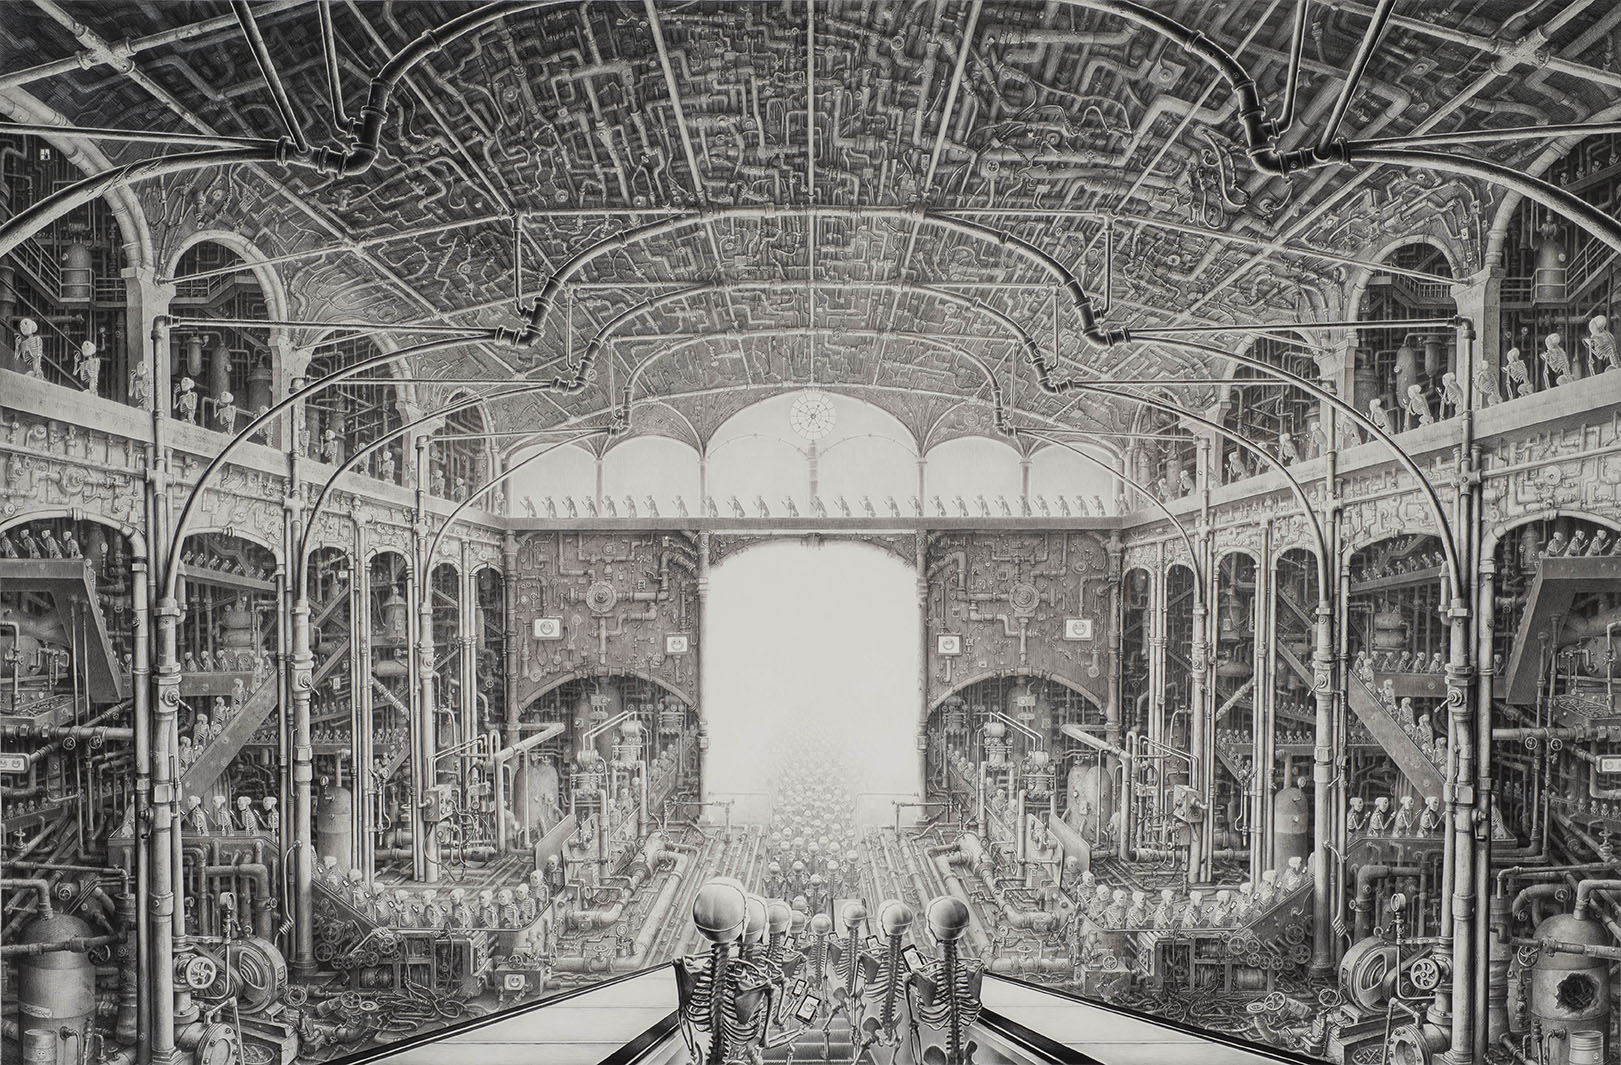 Laurie Lipton pencil drawing, Happy